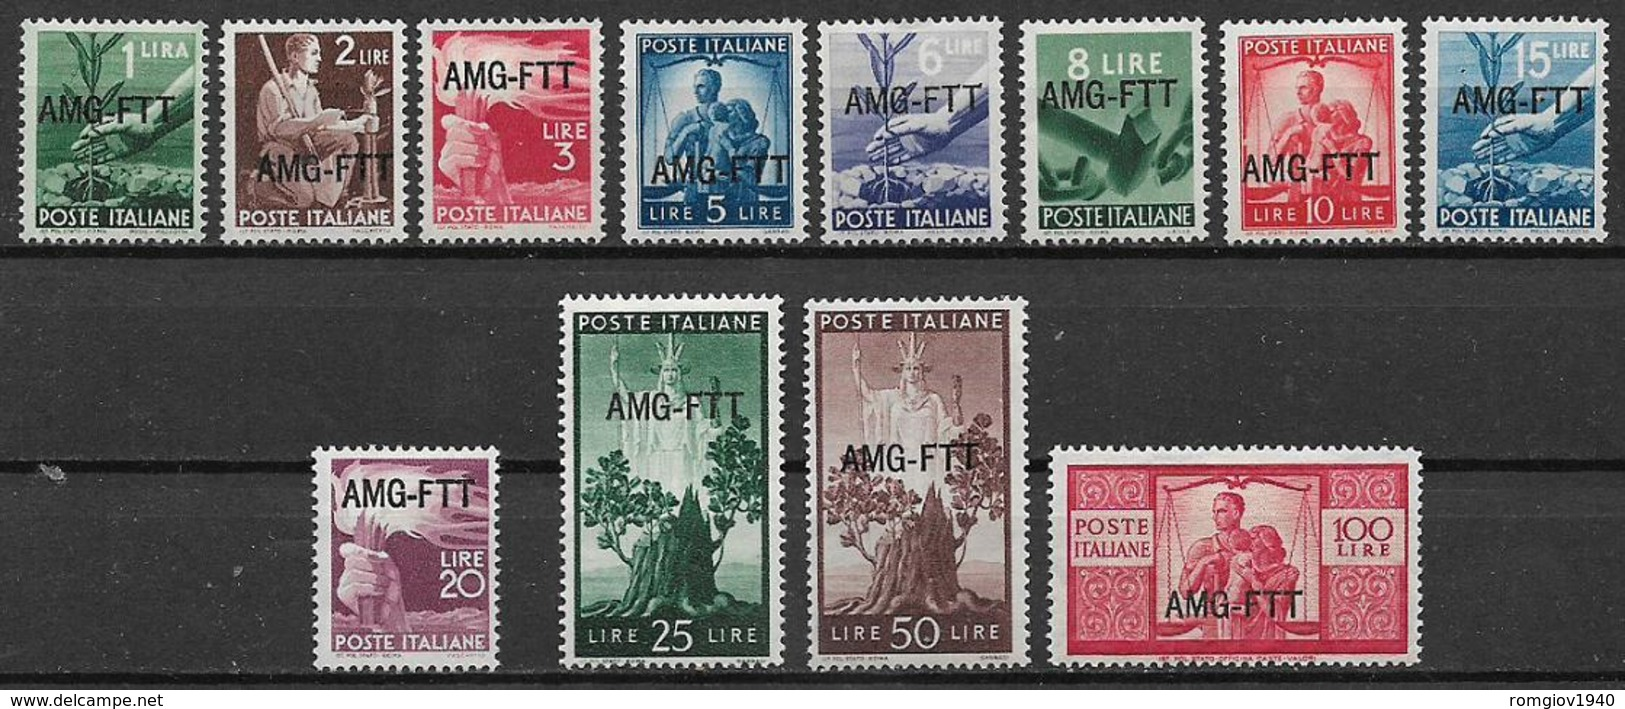 TRIESTE AMG-FTT. 1949-50 DEMOCRATICA  SASS. 56-67 MLH XF - Unclassified